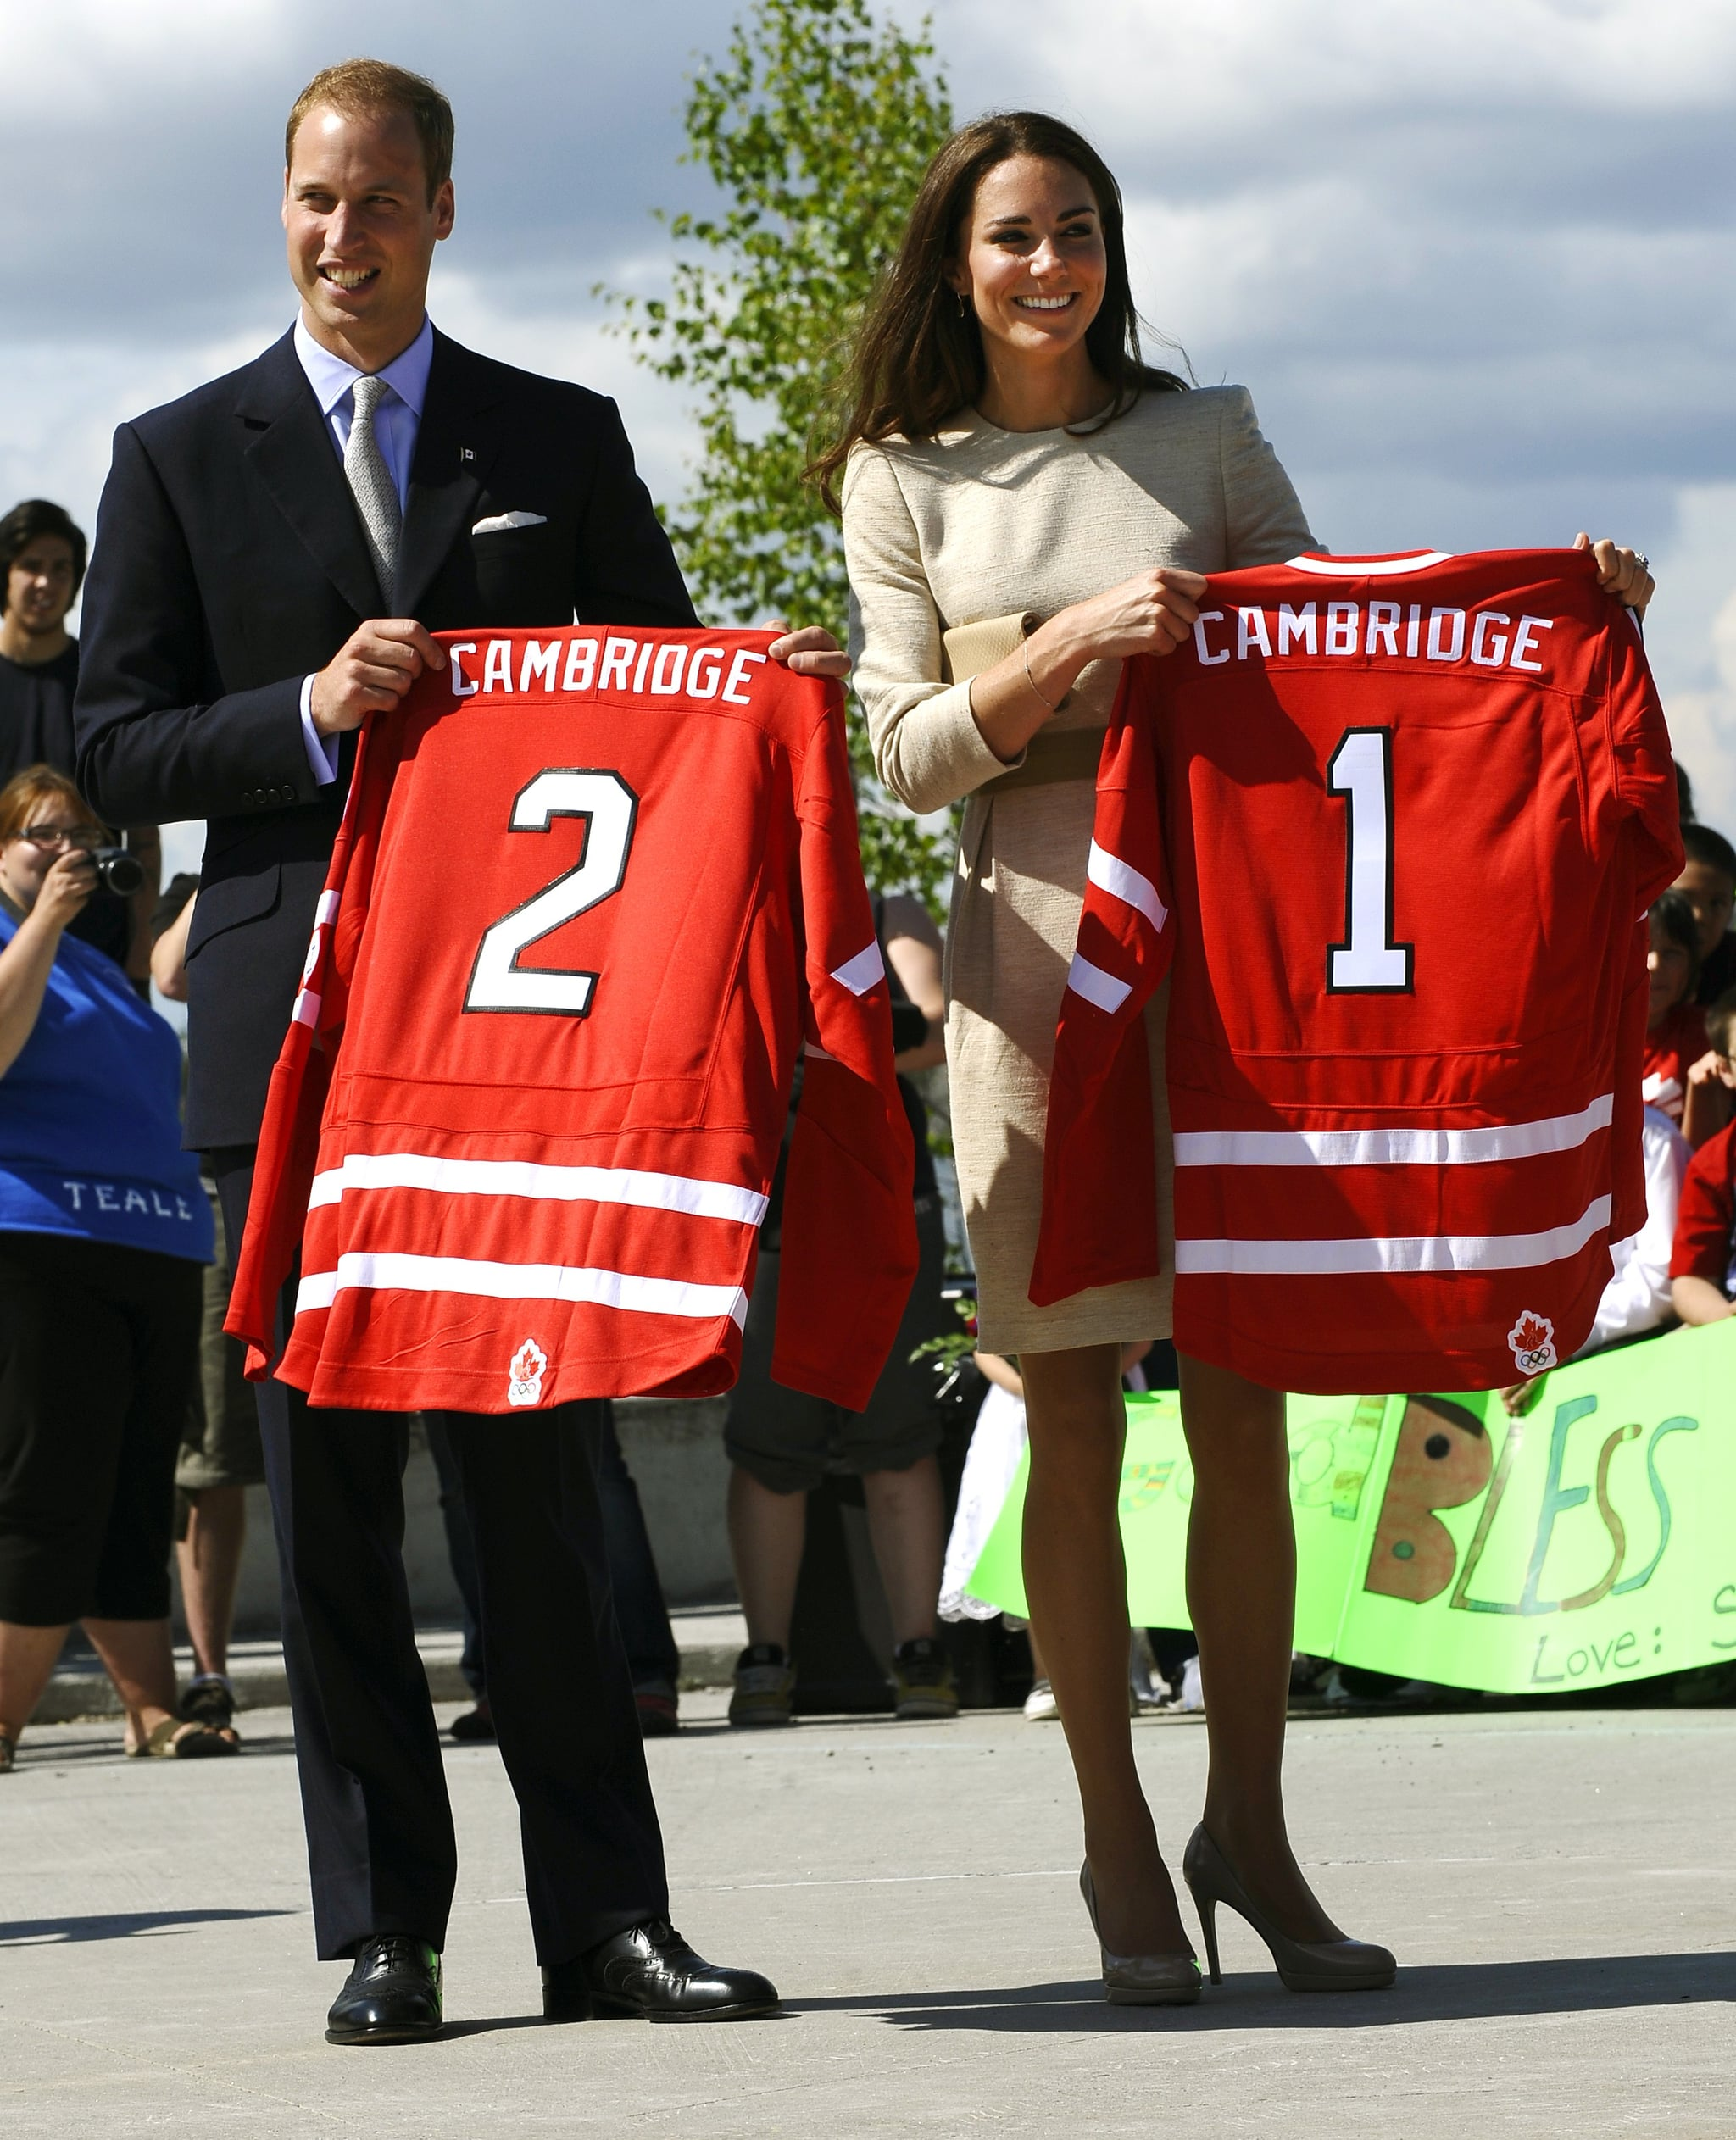 Kate Middleton and Prince William showed off their namesake jerseys.